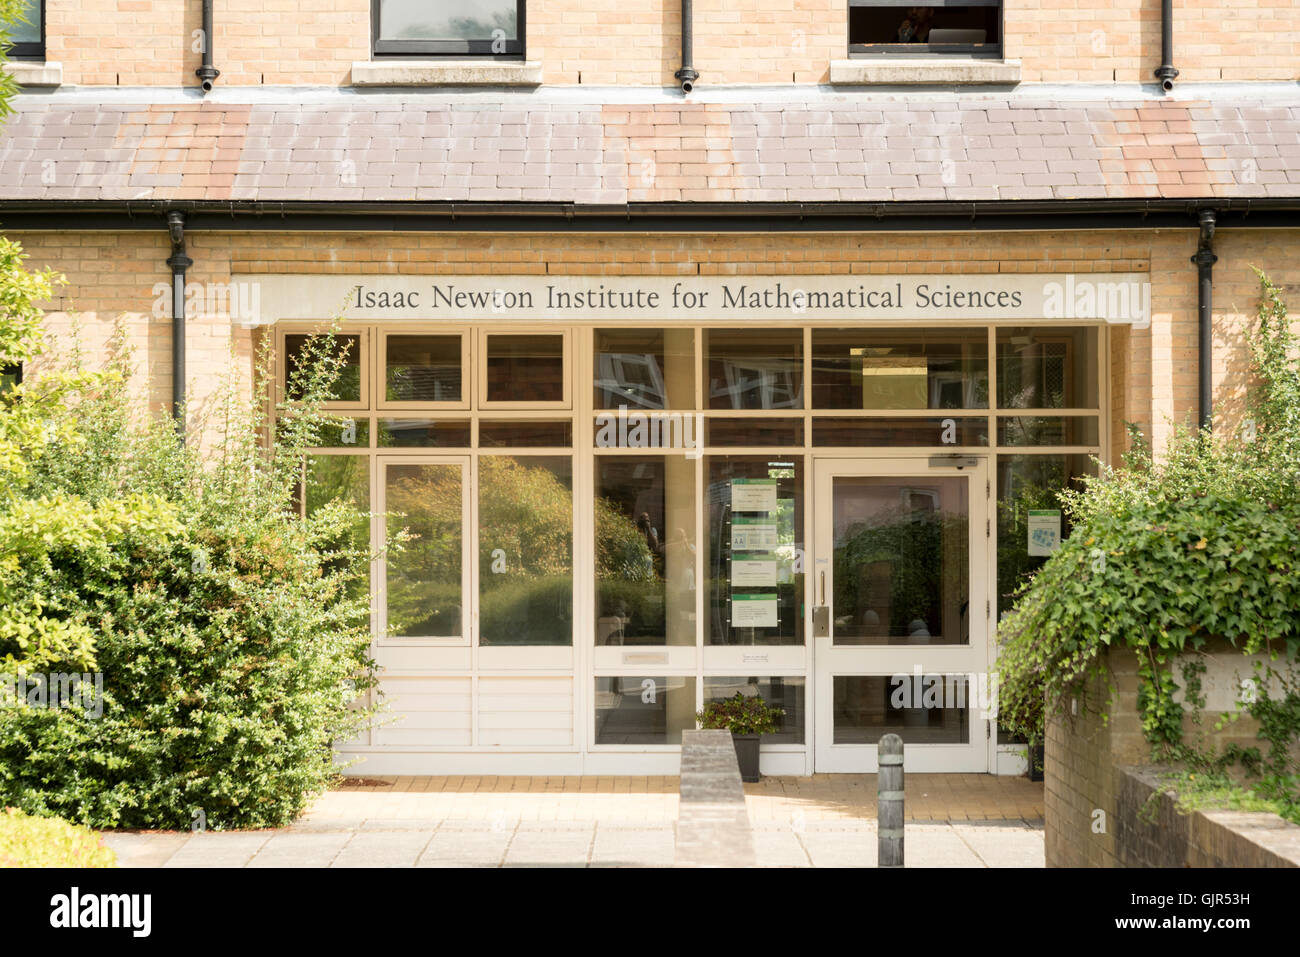 The Isaac Newton Institute for Mathematical Sciences building at Cambridge UNiversity Cambridge Uk - Stock Image